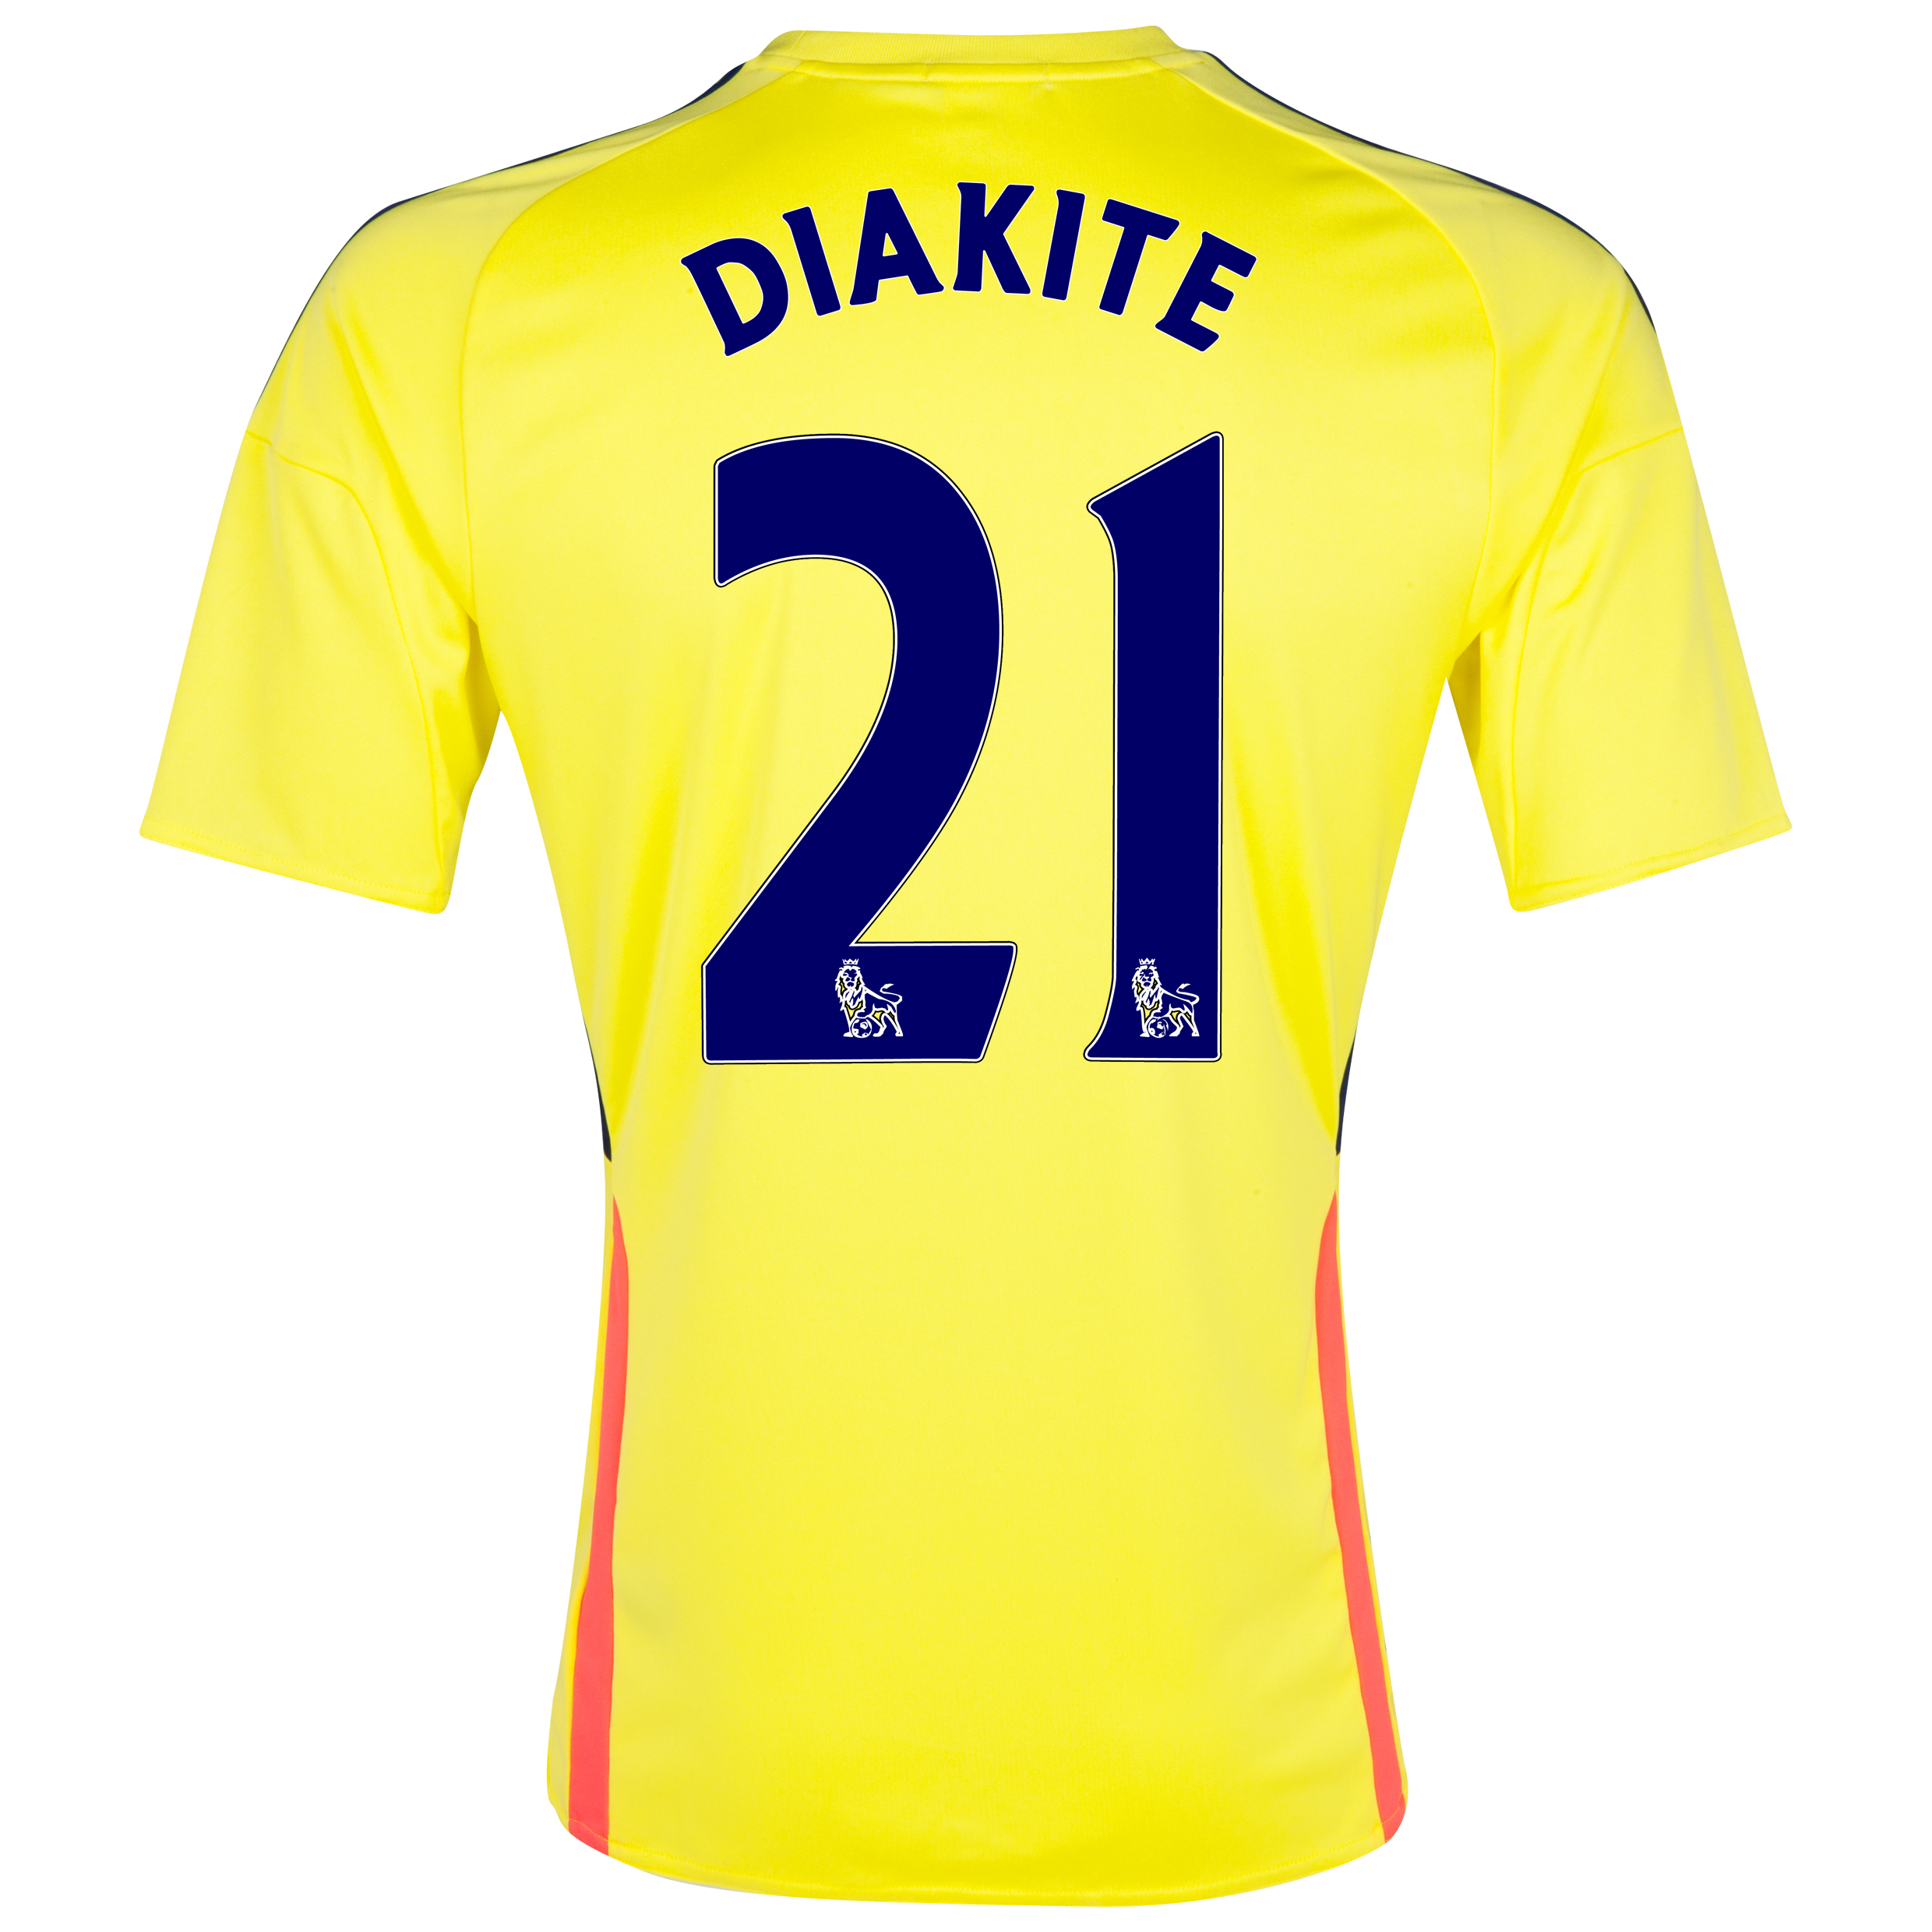 Sunderland Away Shirt 2013/14 with Diakite 21 printing